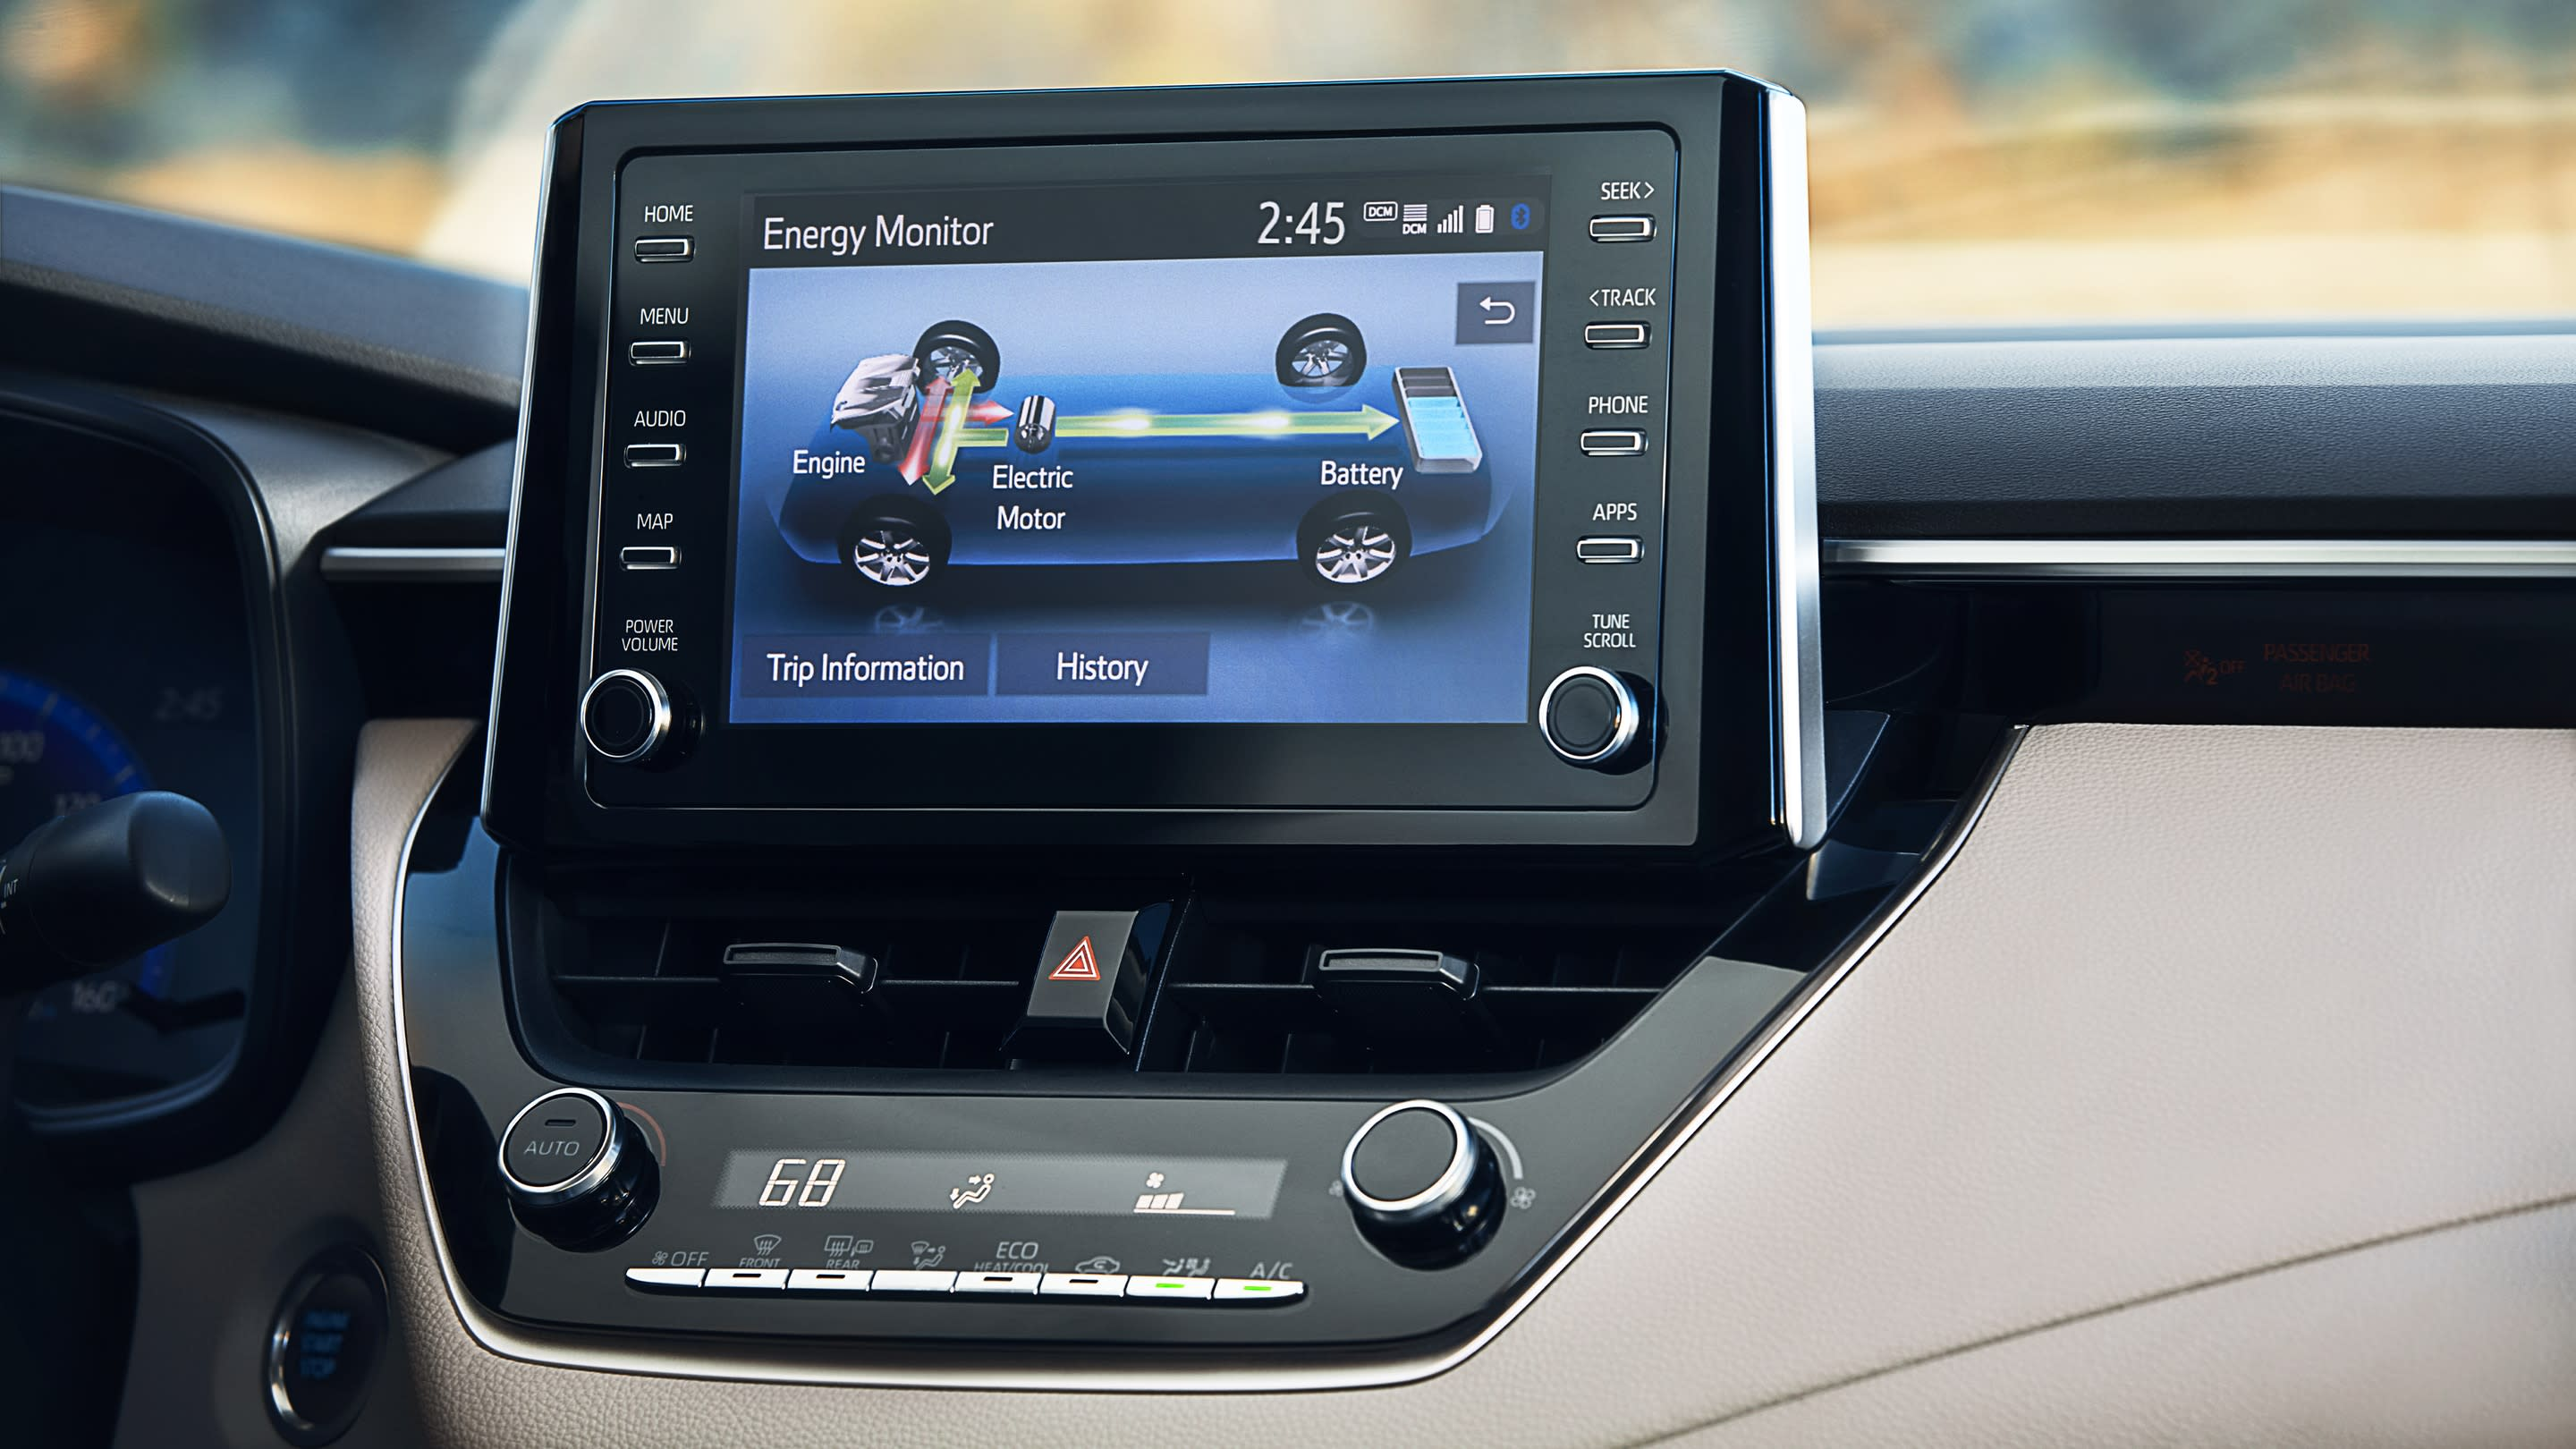 Touchscreen in the Corolla Hybrid